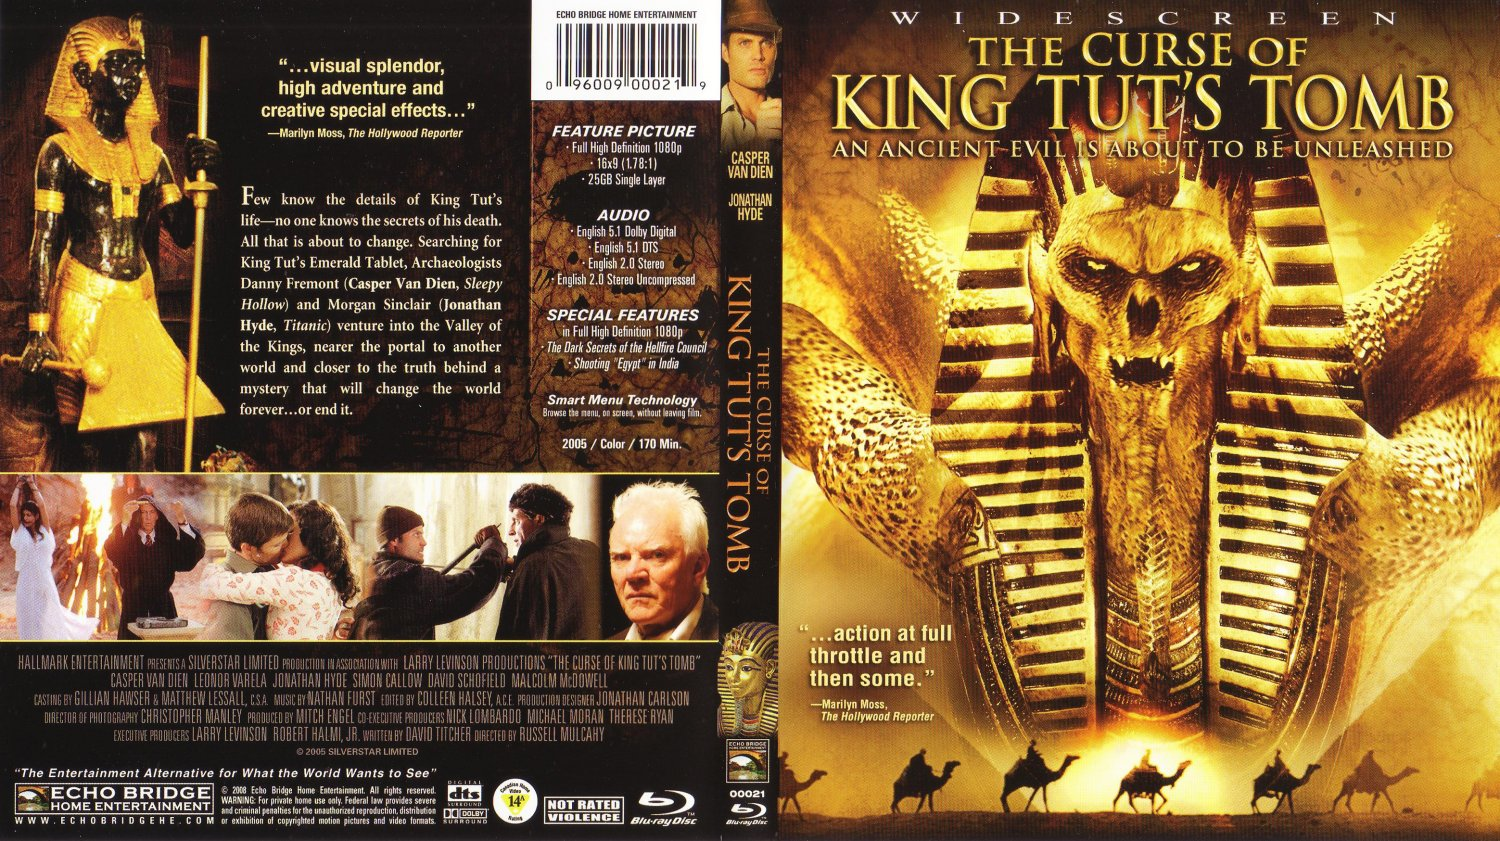 The Curse Of King Tut's Tomb (Widescreen DVD) Casper Van